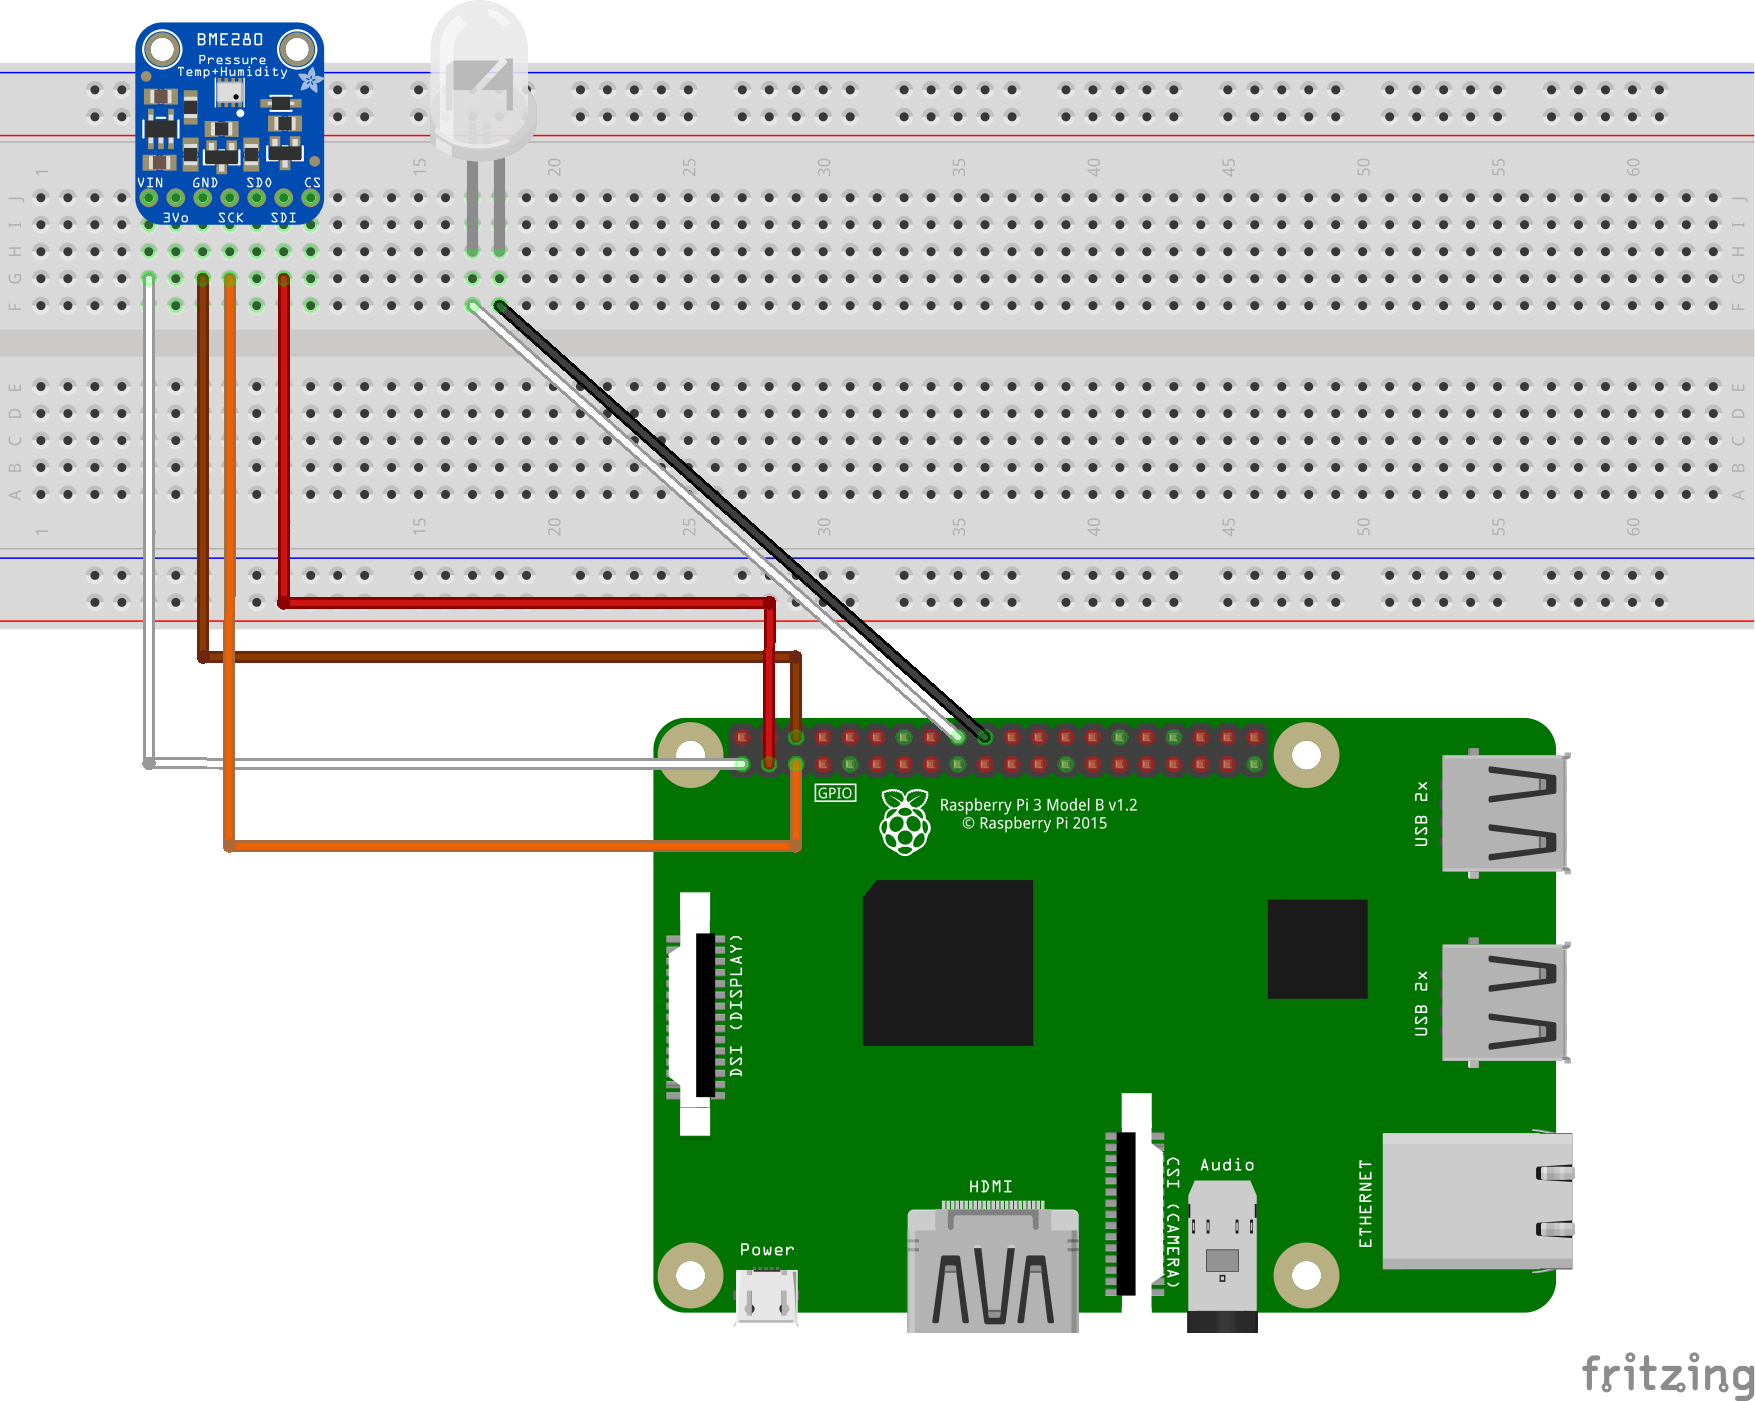 Github Azure Samples Iot Hub Node Raspberrypi Client App Wiringpi2 Python Without Root Bme280